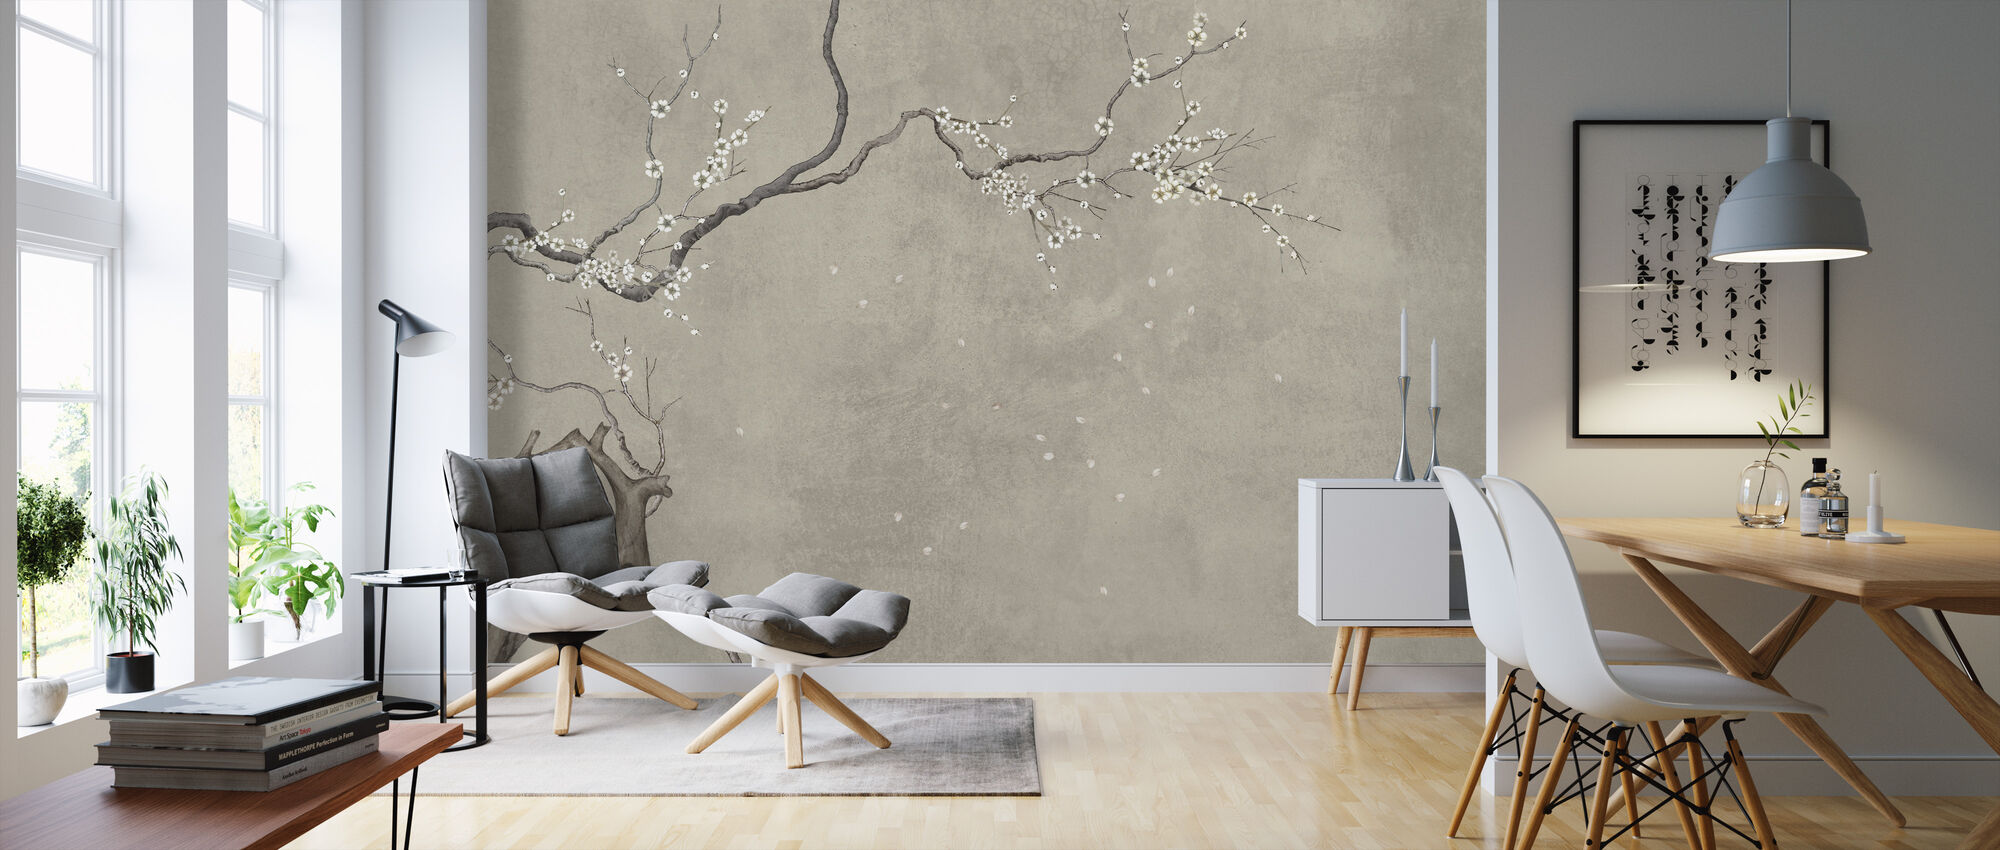 Chatoyer - Wallpaper - Living Room